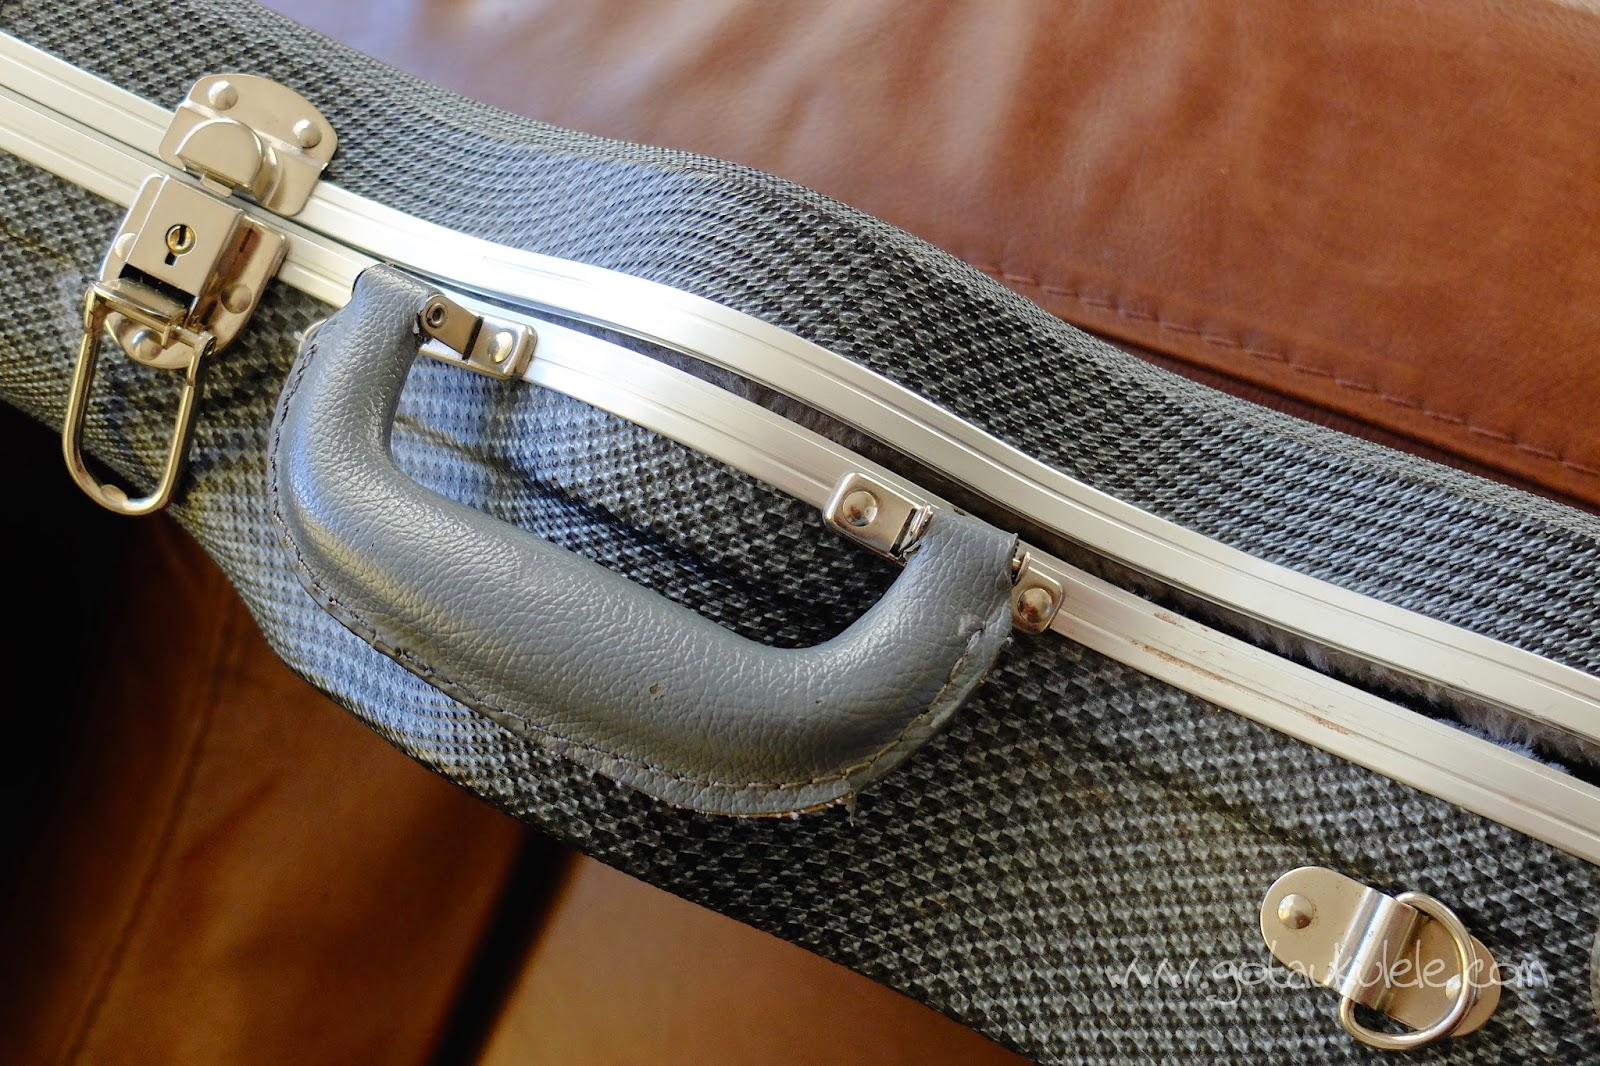 TGI ABS Ukulele Case handle